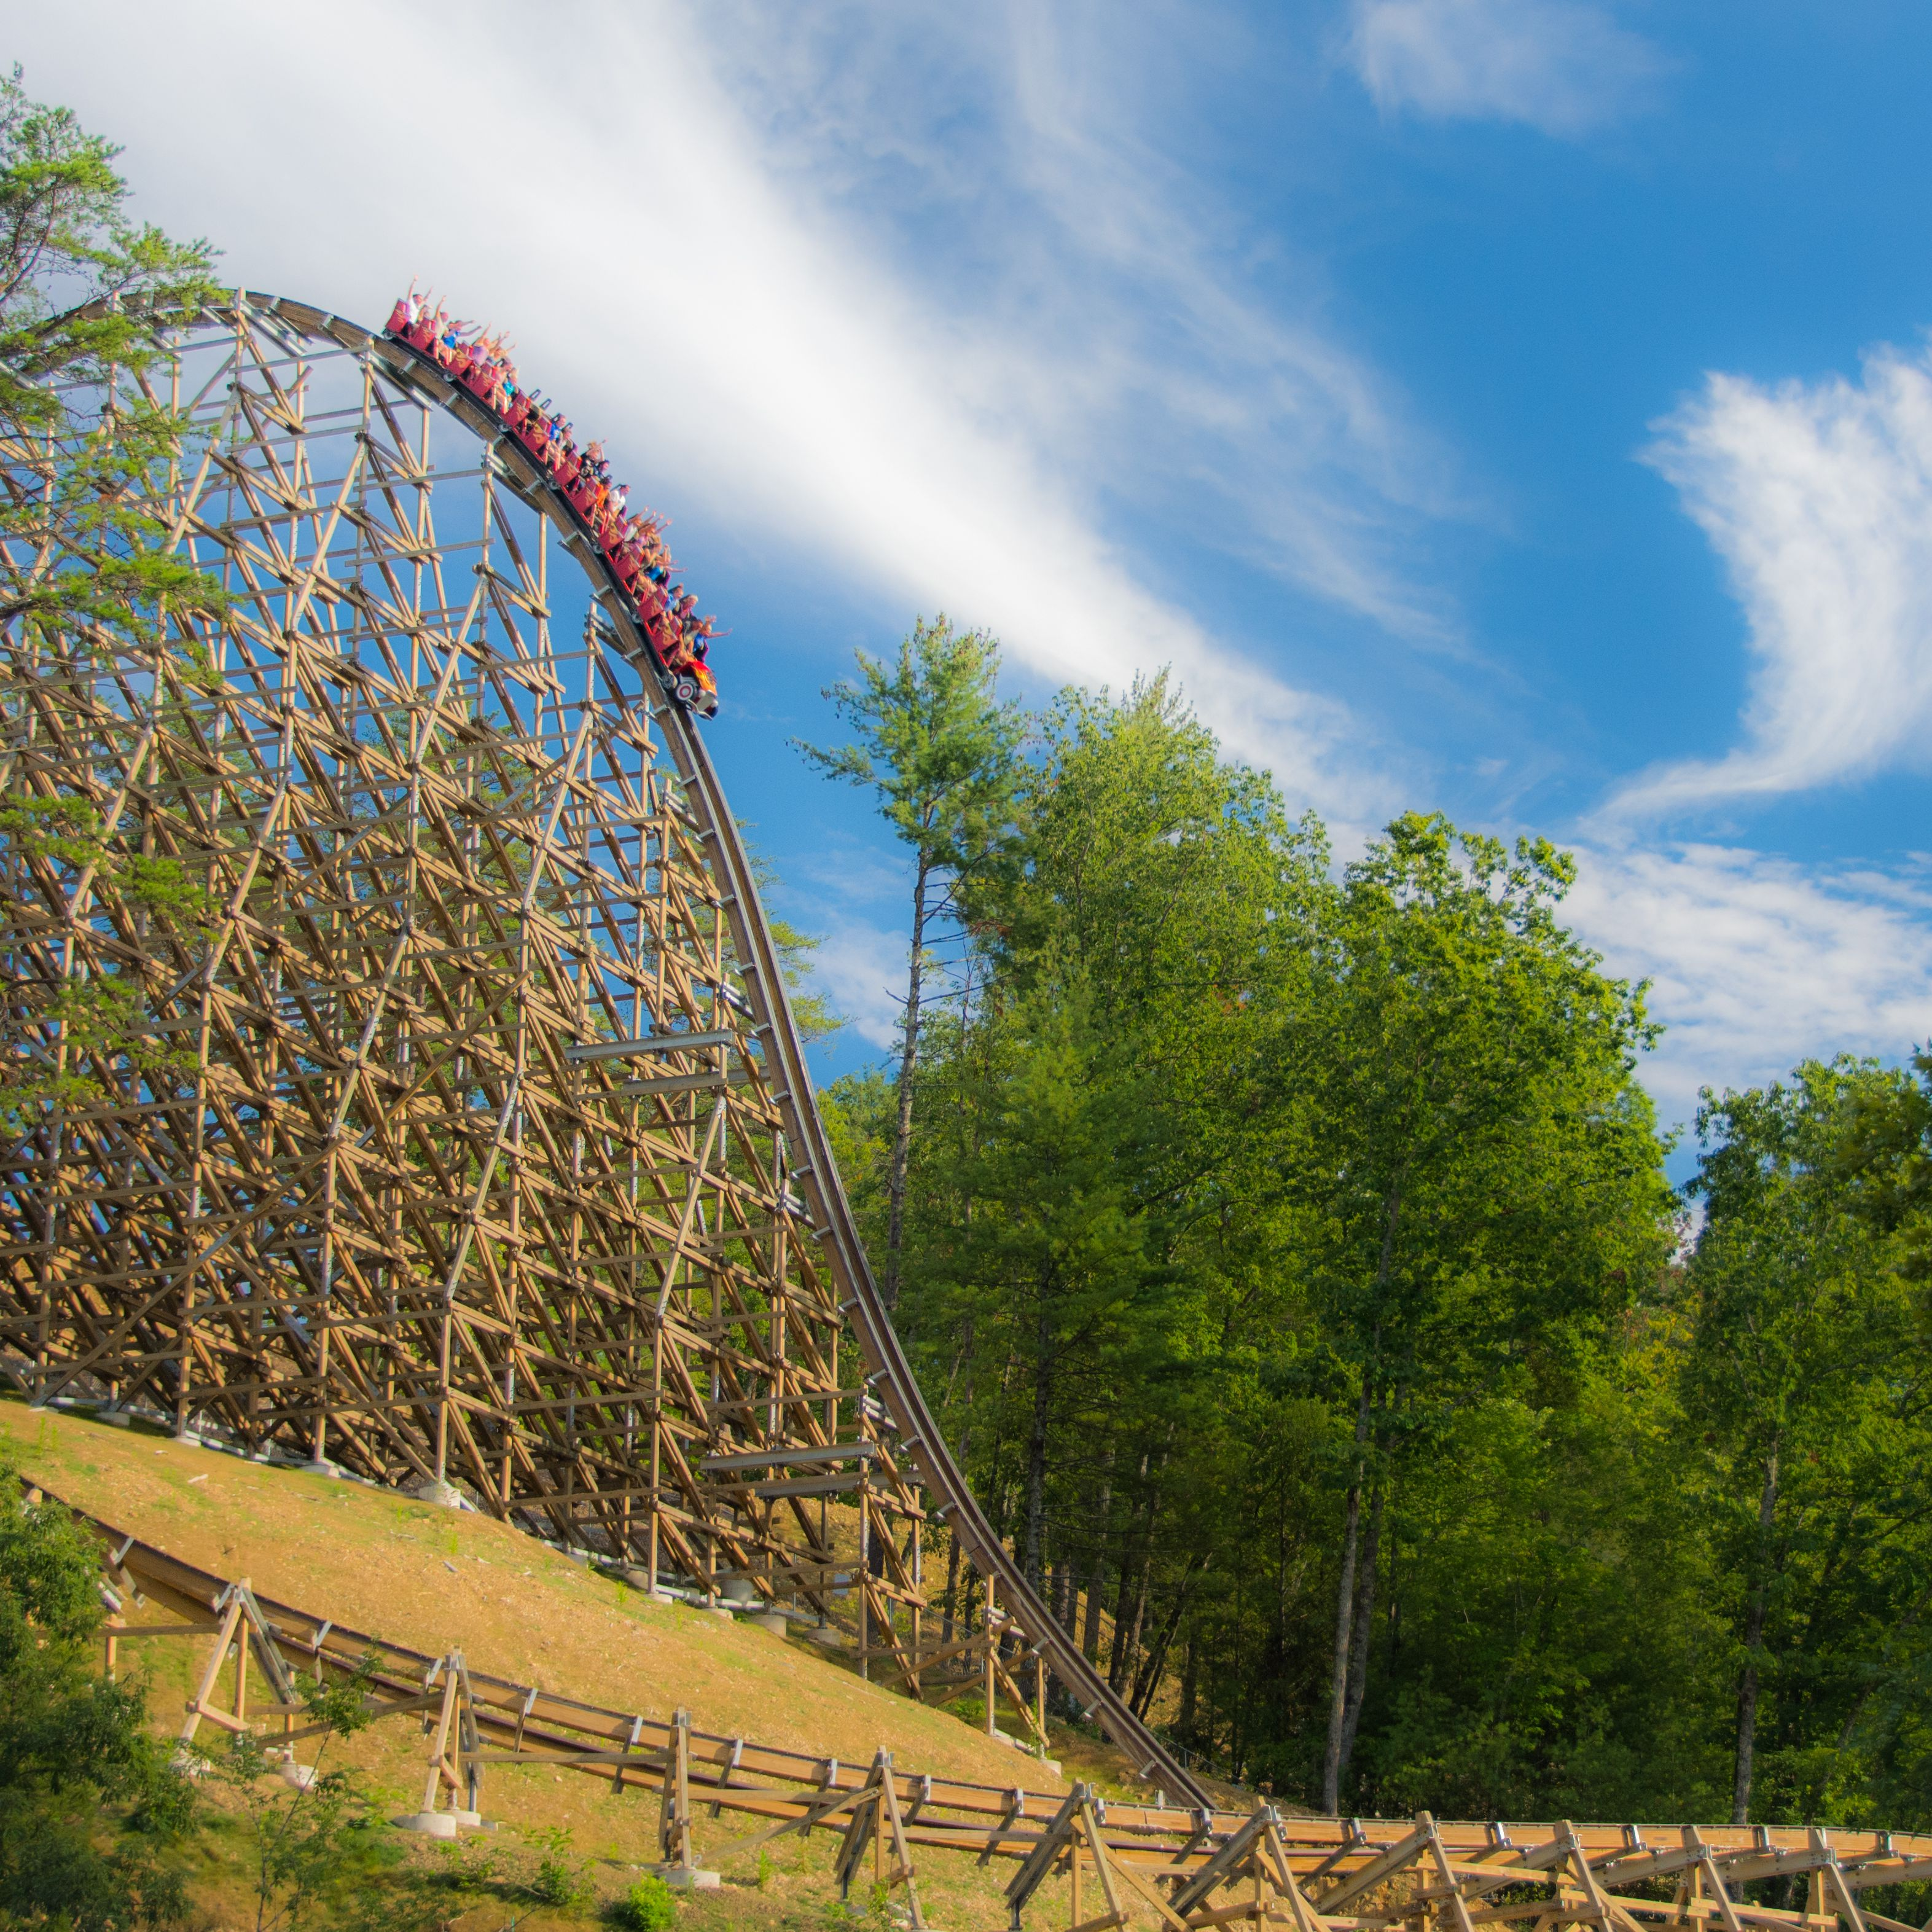 Dollywoods Lightning Rod Review Of The Roller Coaster